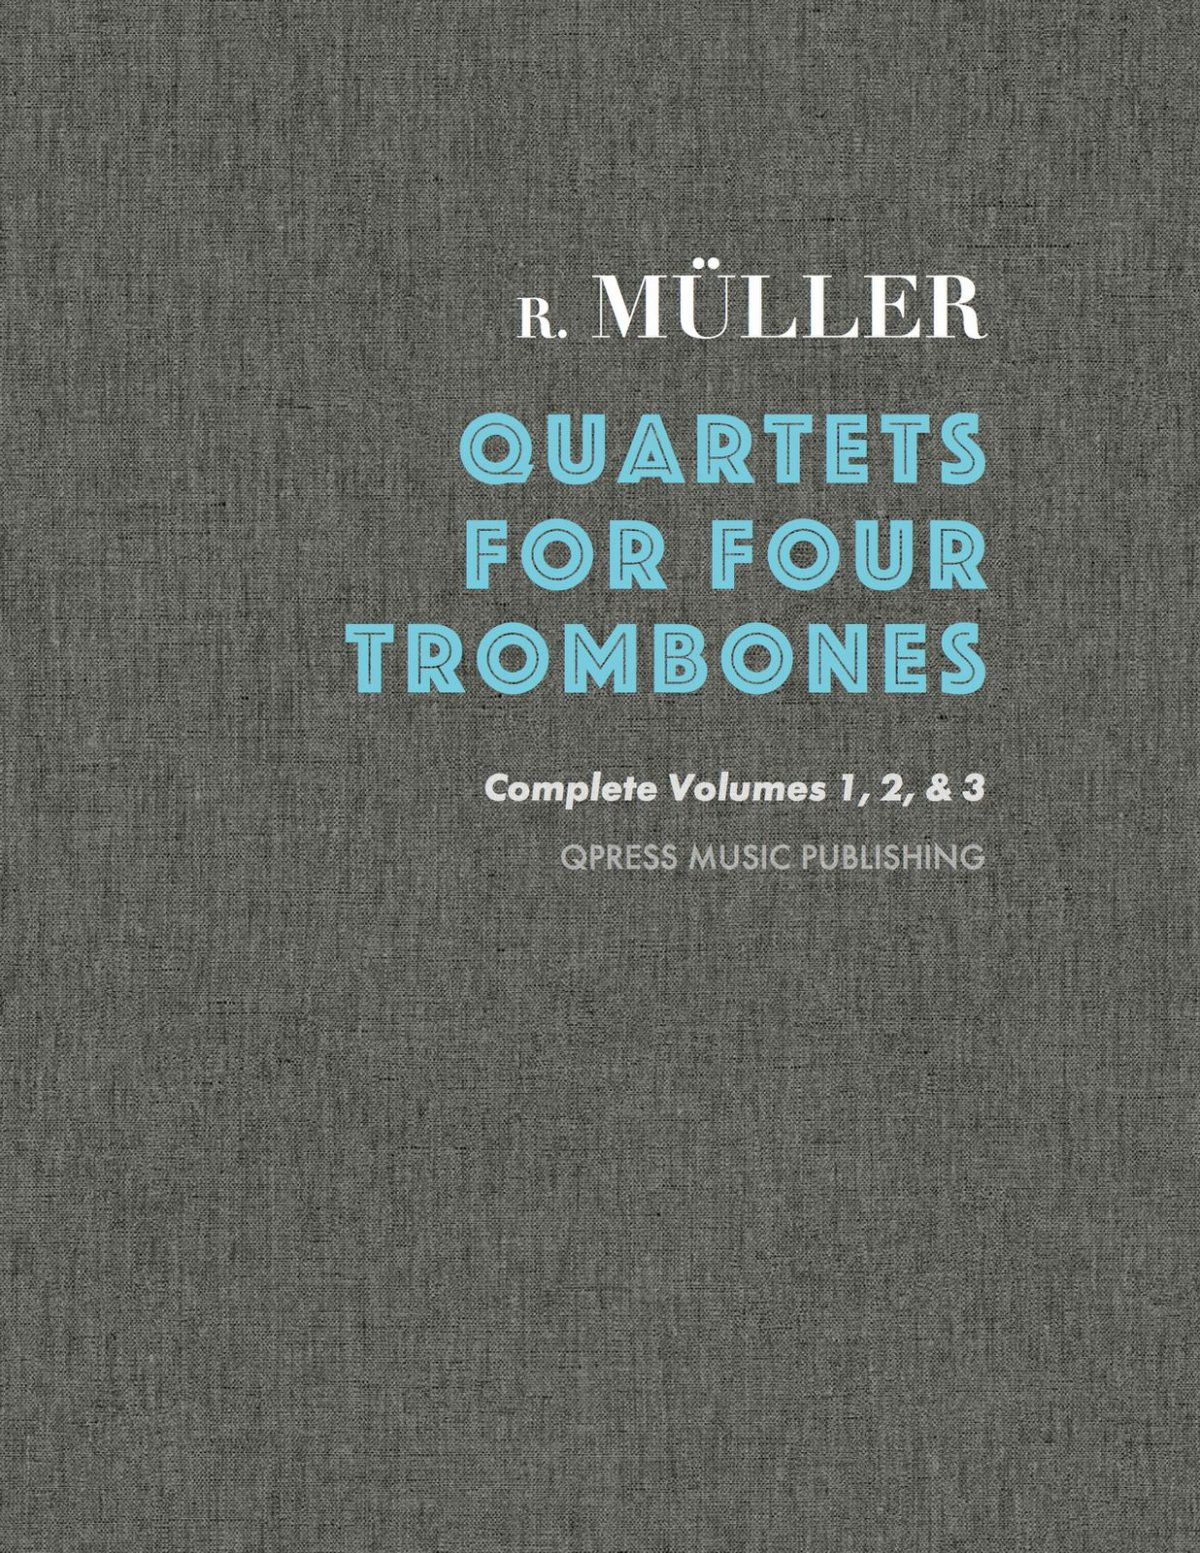 Muller, Quartets for Trombone Cover-p1